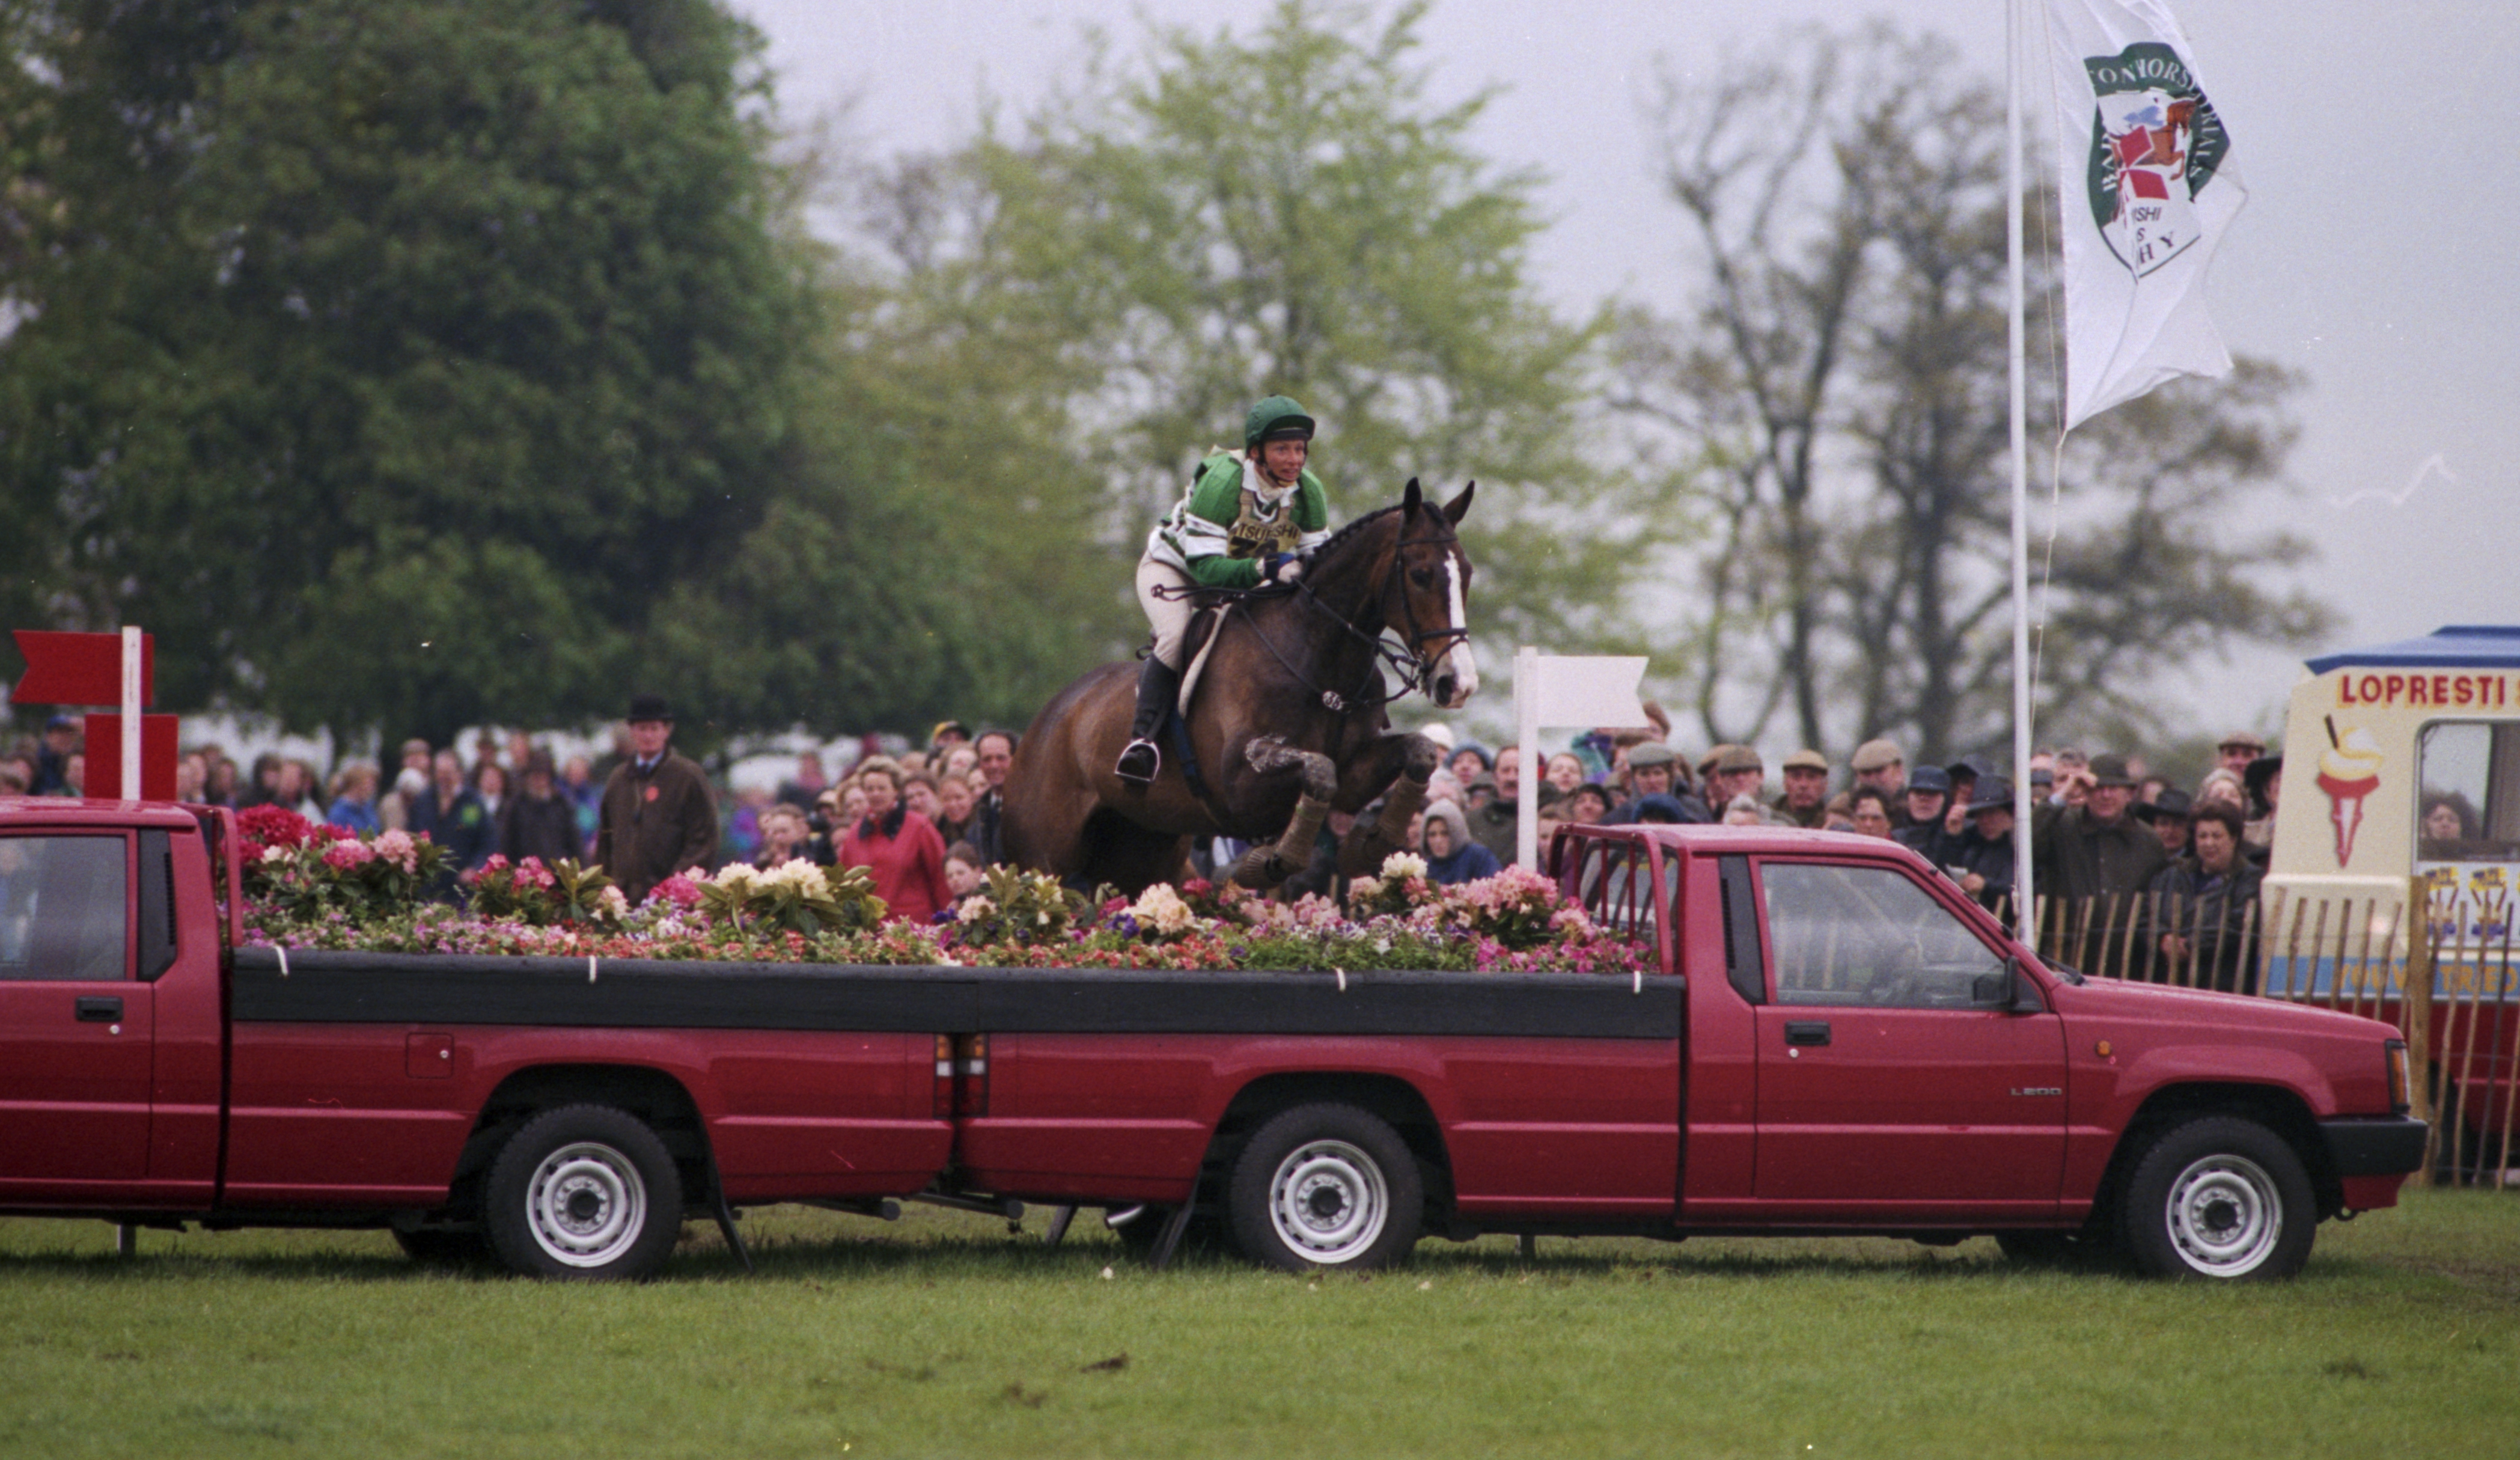 The end of an era: 11 of the greatest Mitsubishi Motors Badminton Horse Trials moments